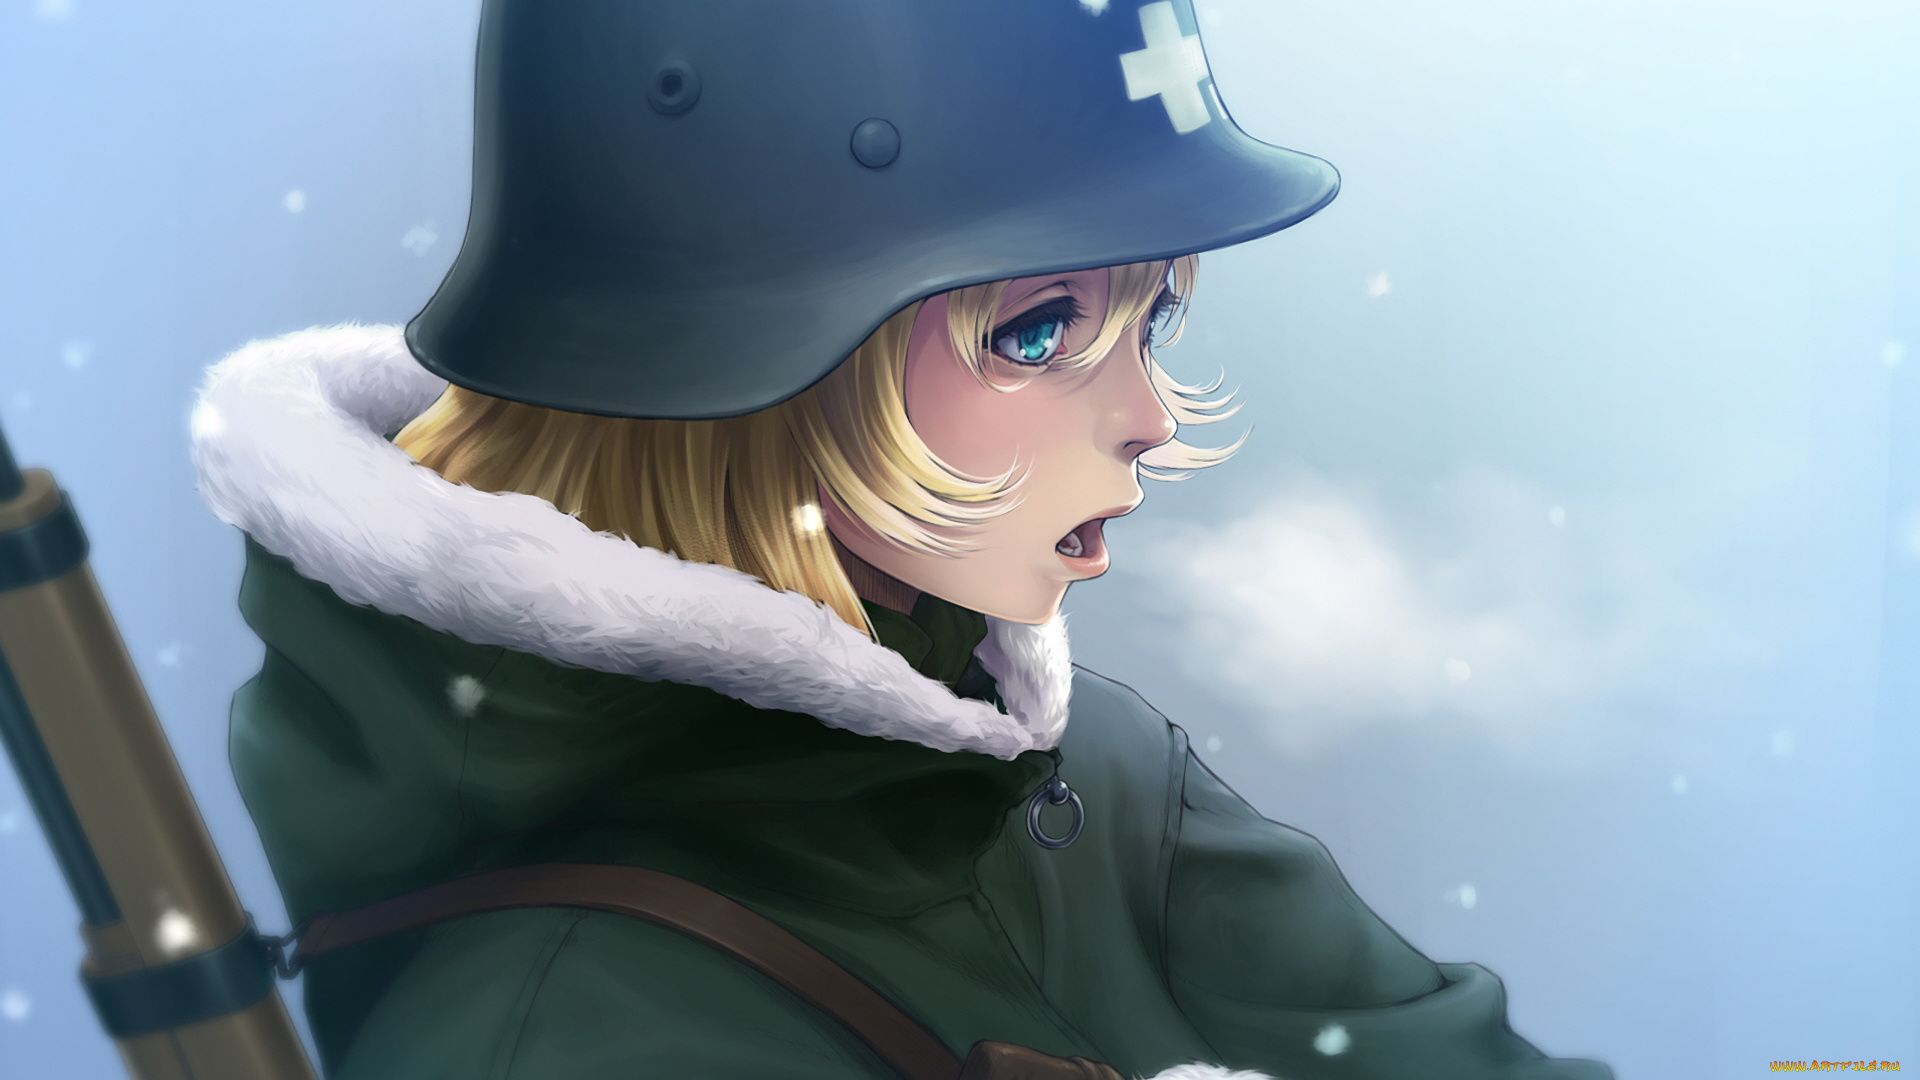 Anime Picture In The Helmet Of Military